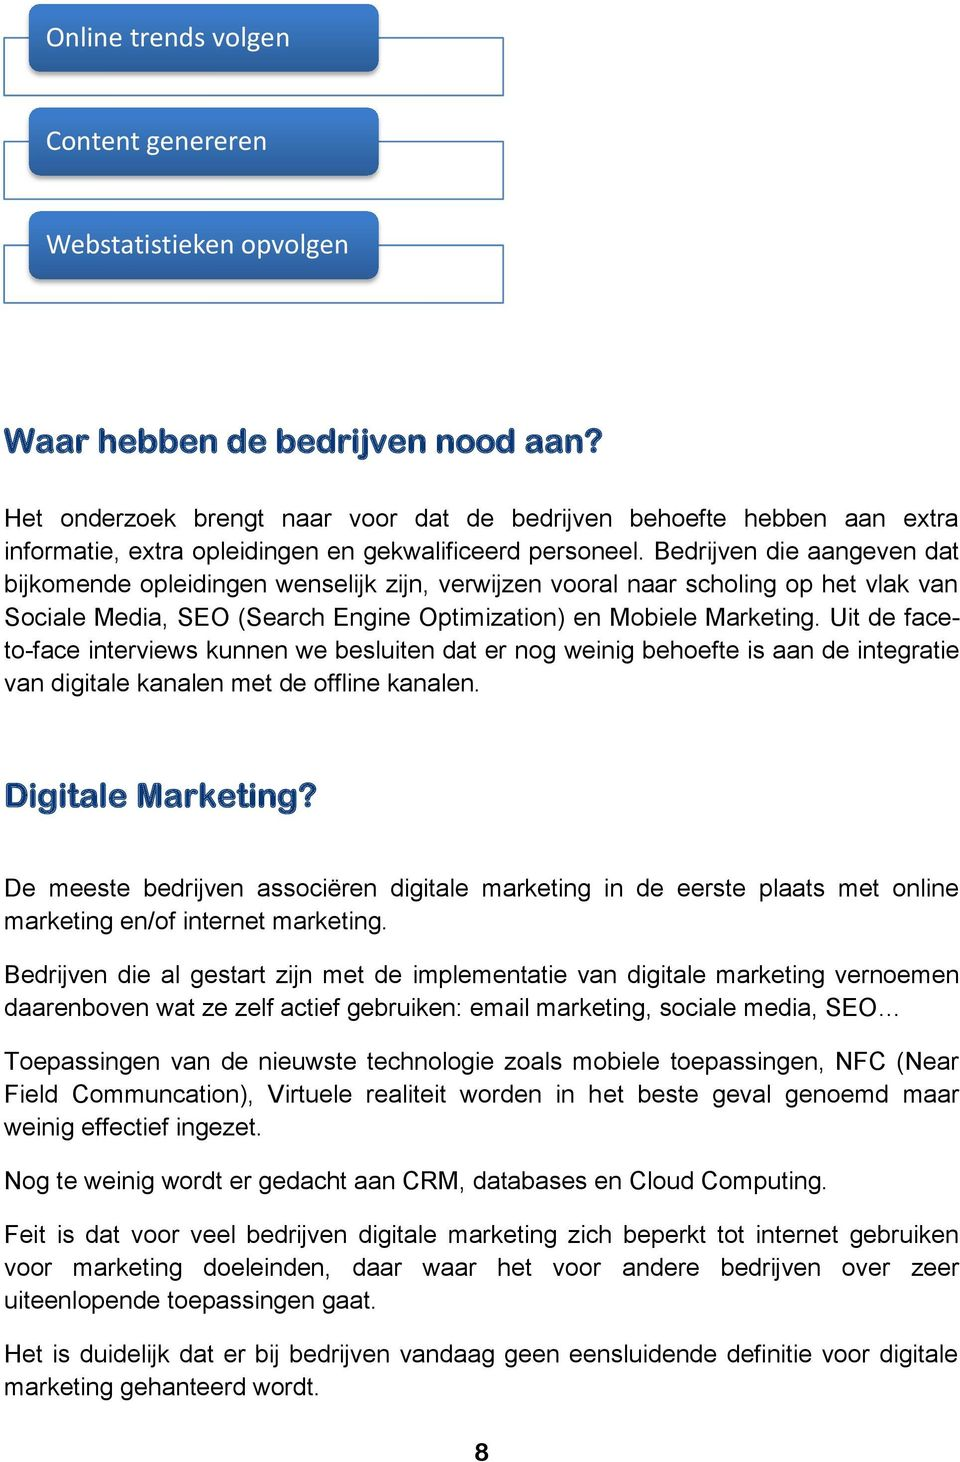 Bedrijven die aangeven dat bijkomende opleidingen wenselijk zijn, verwijzen vooral naar scholing op het vlak van Sociale Media, SEO (Search Engine Optimization) en Mobiele Marketing.